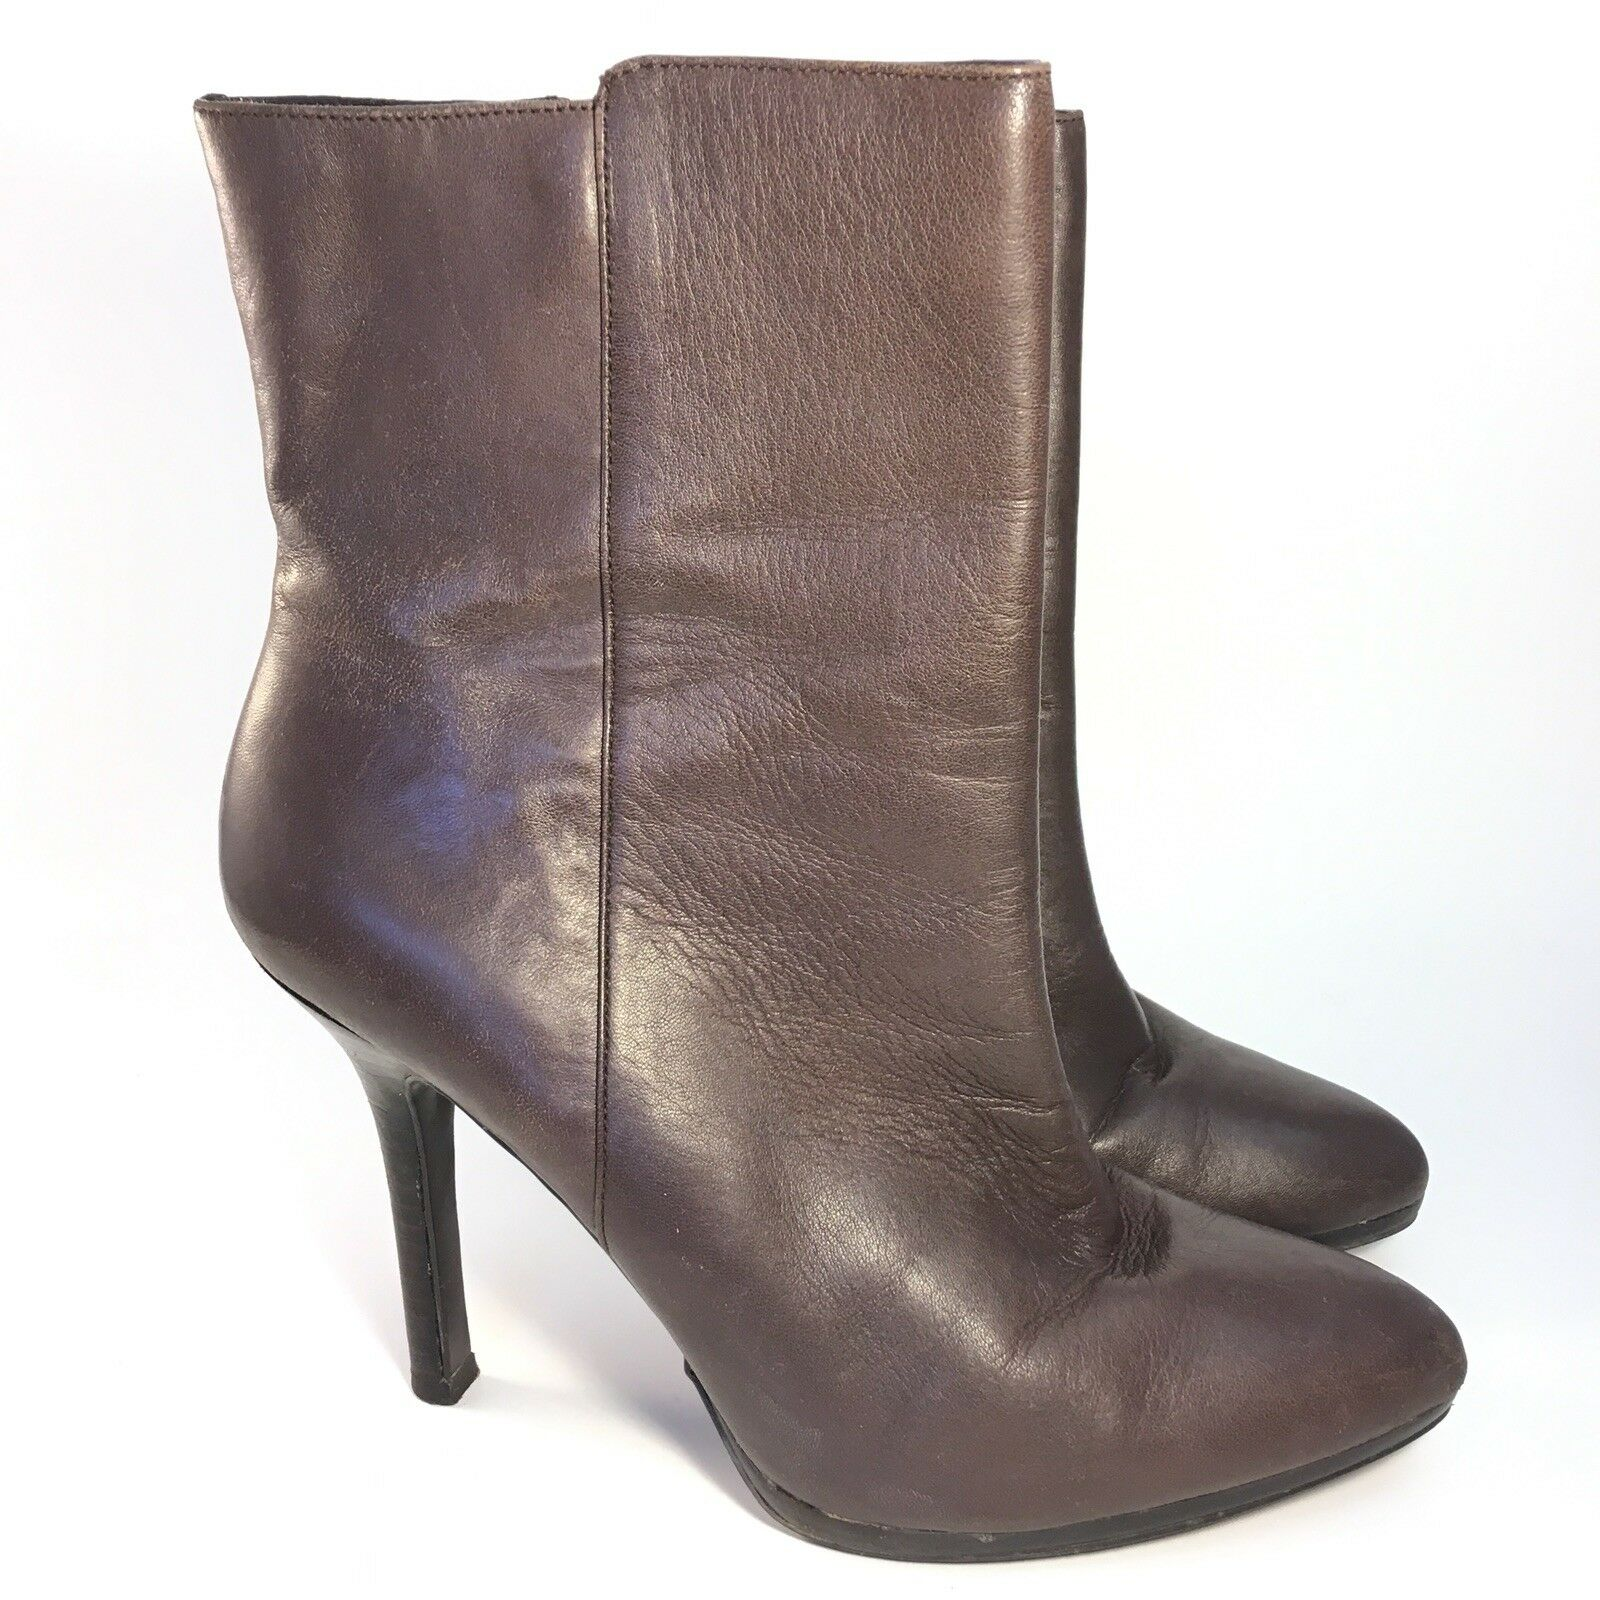 Ralph Lauren shoes 9 B Larissa Leather Ankle Boots Brown Stiletto Heel Booties